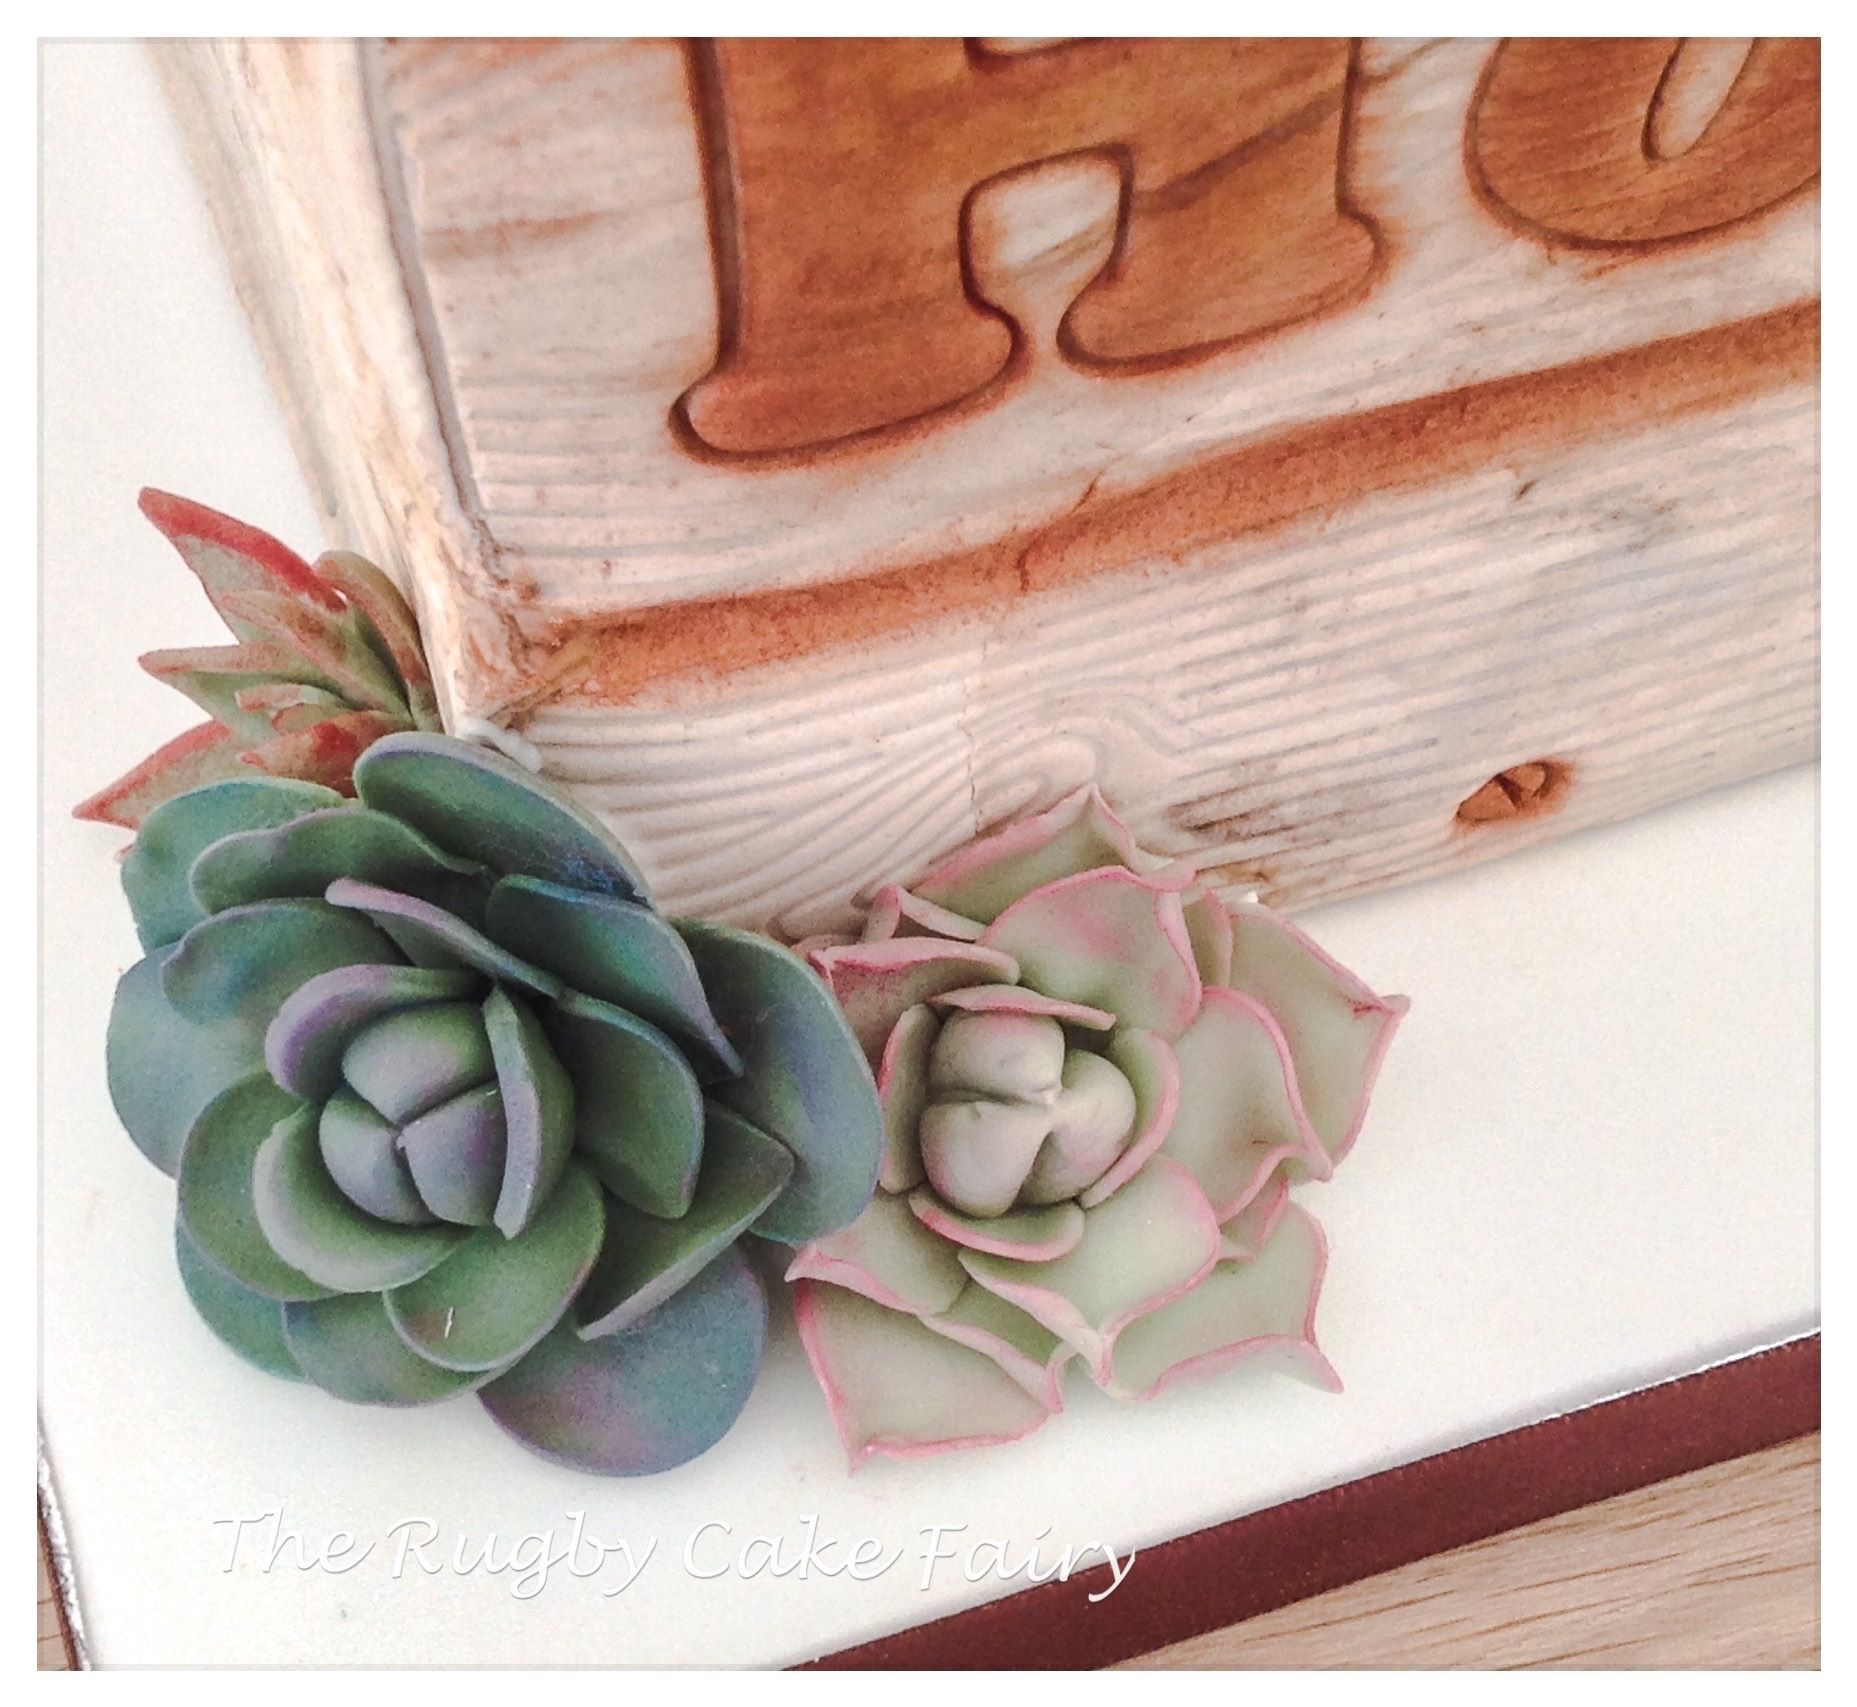 lemon crate wedding cake succulents